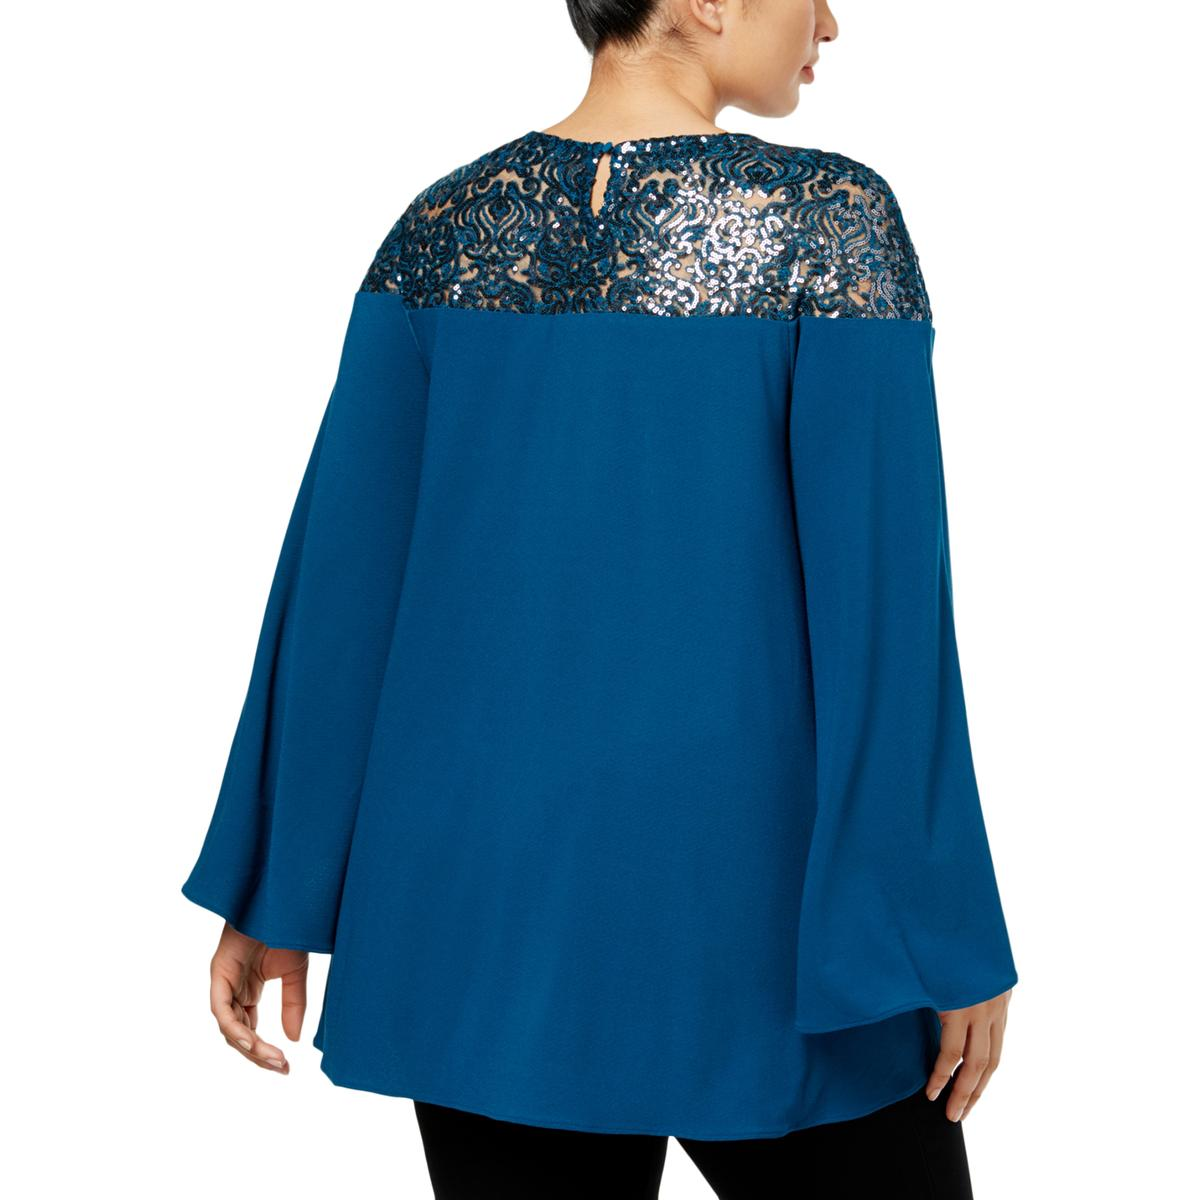 87e89d76a116b Alfani Womens Blue Sequined Bell Sleeves Night out Blouse Top Plus ...